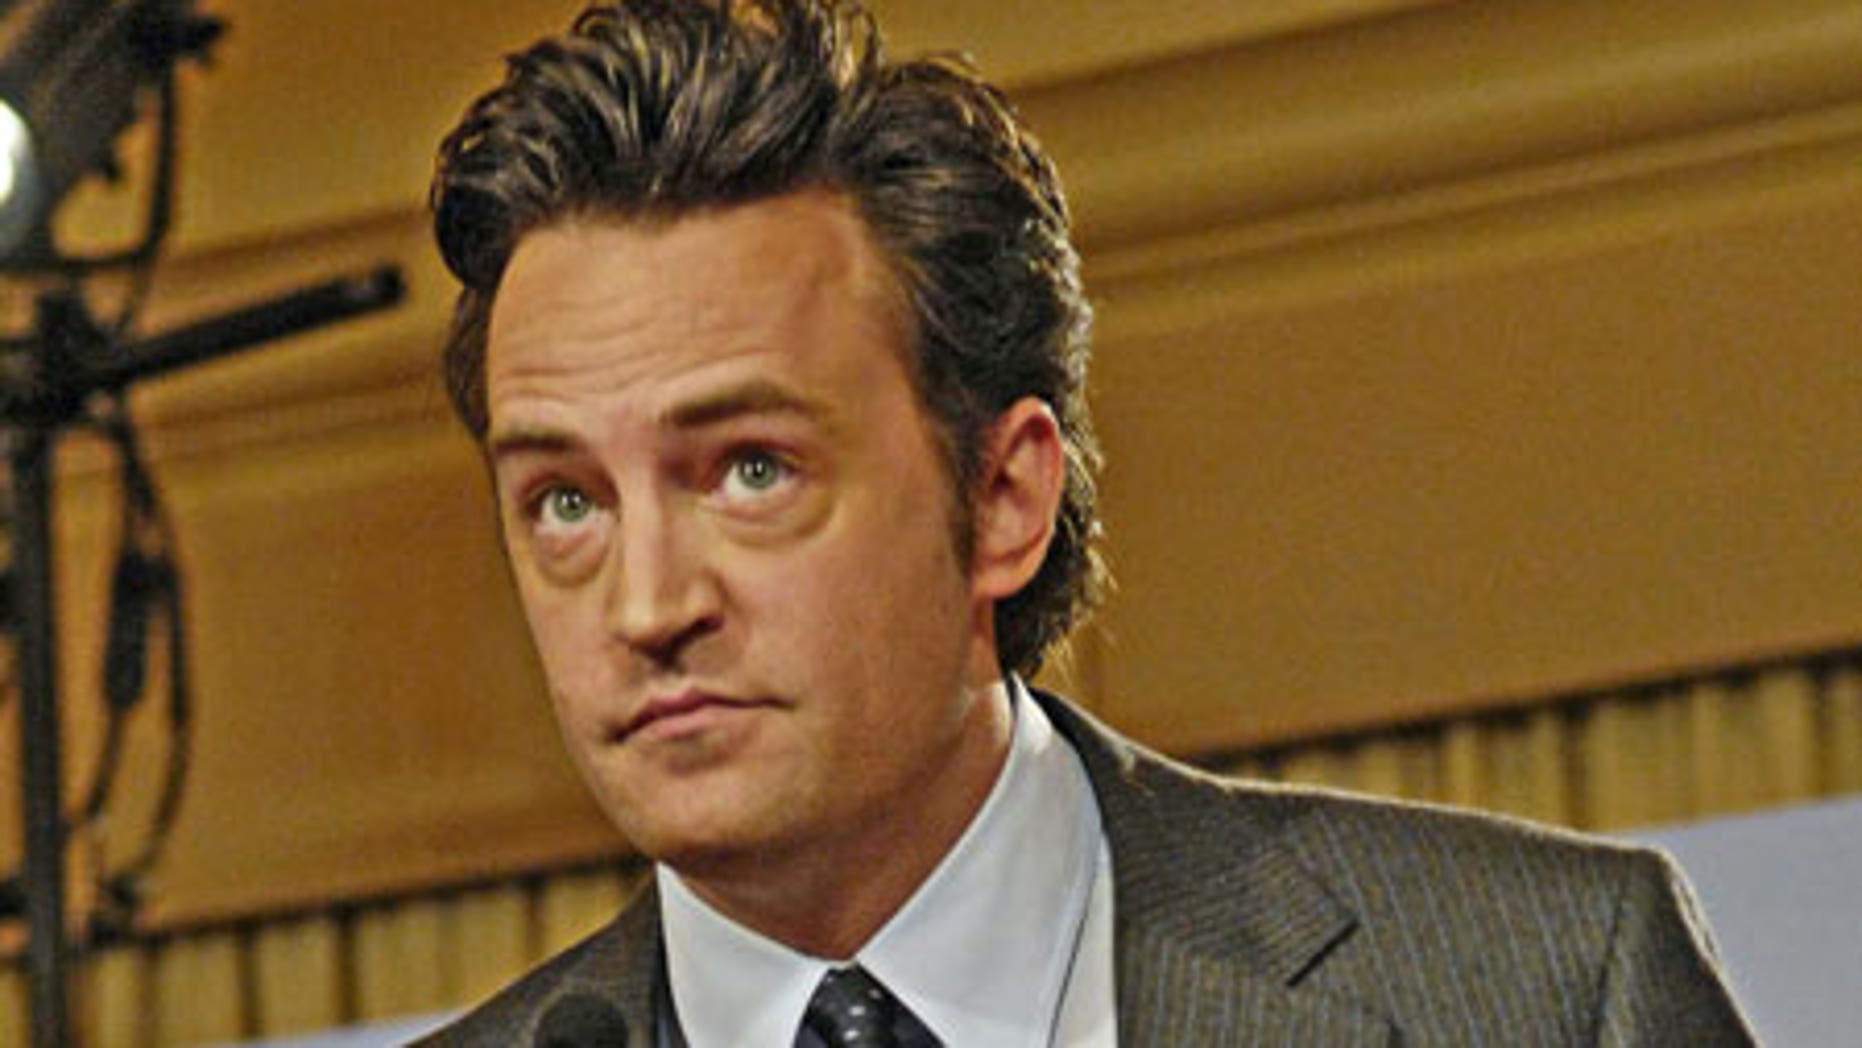 Matthew Perry's latest role is playing an old Zac Efron.